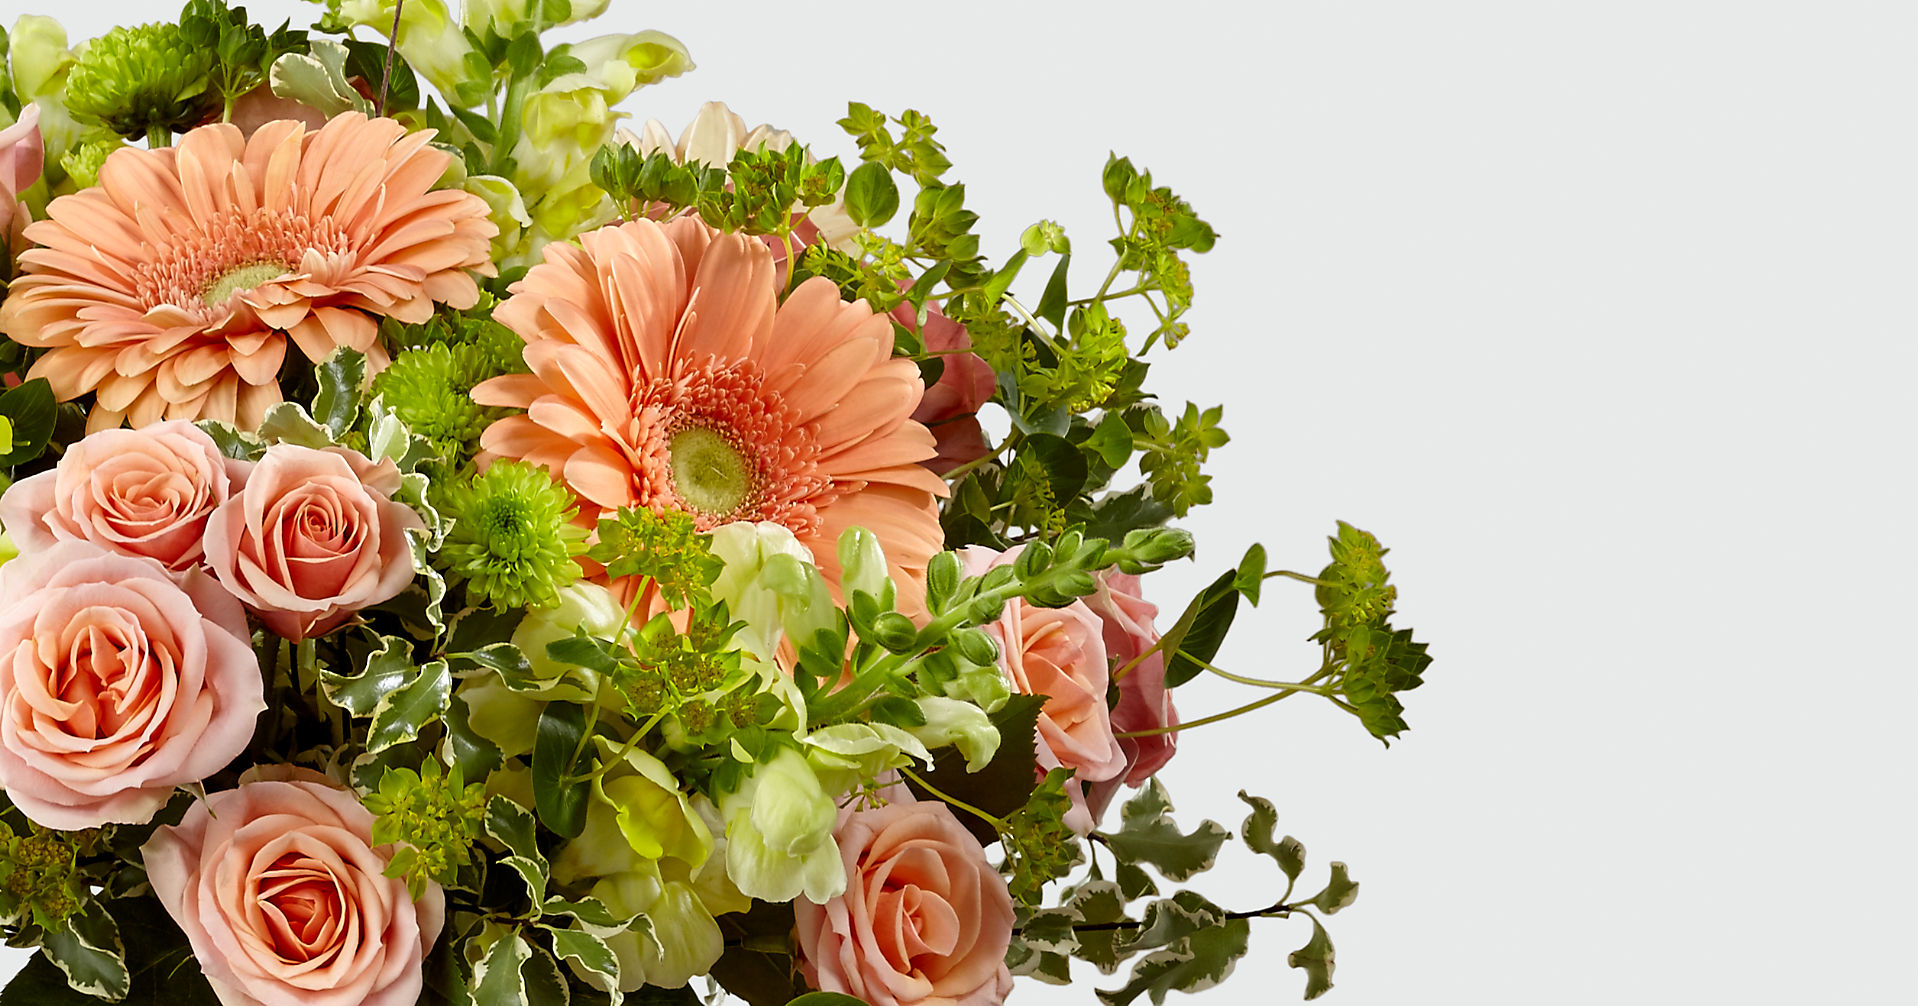 Peachy Keen™ Bouquet by FTD® - VASE INCLUDED - Image 3 Of 3